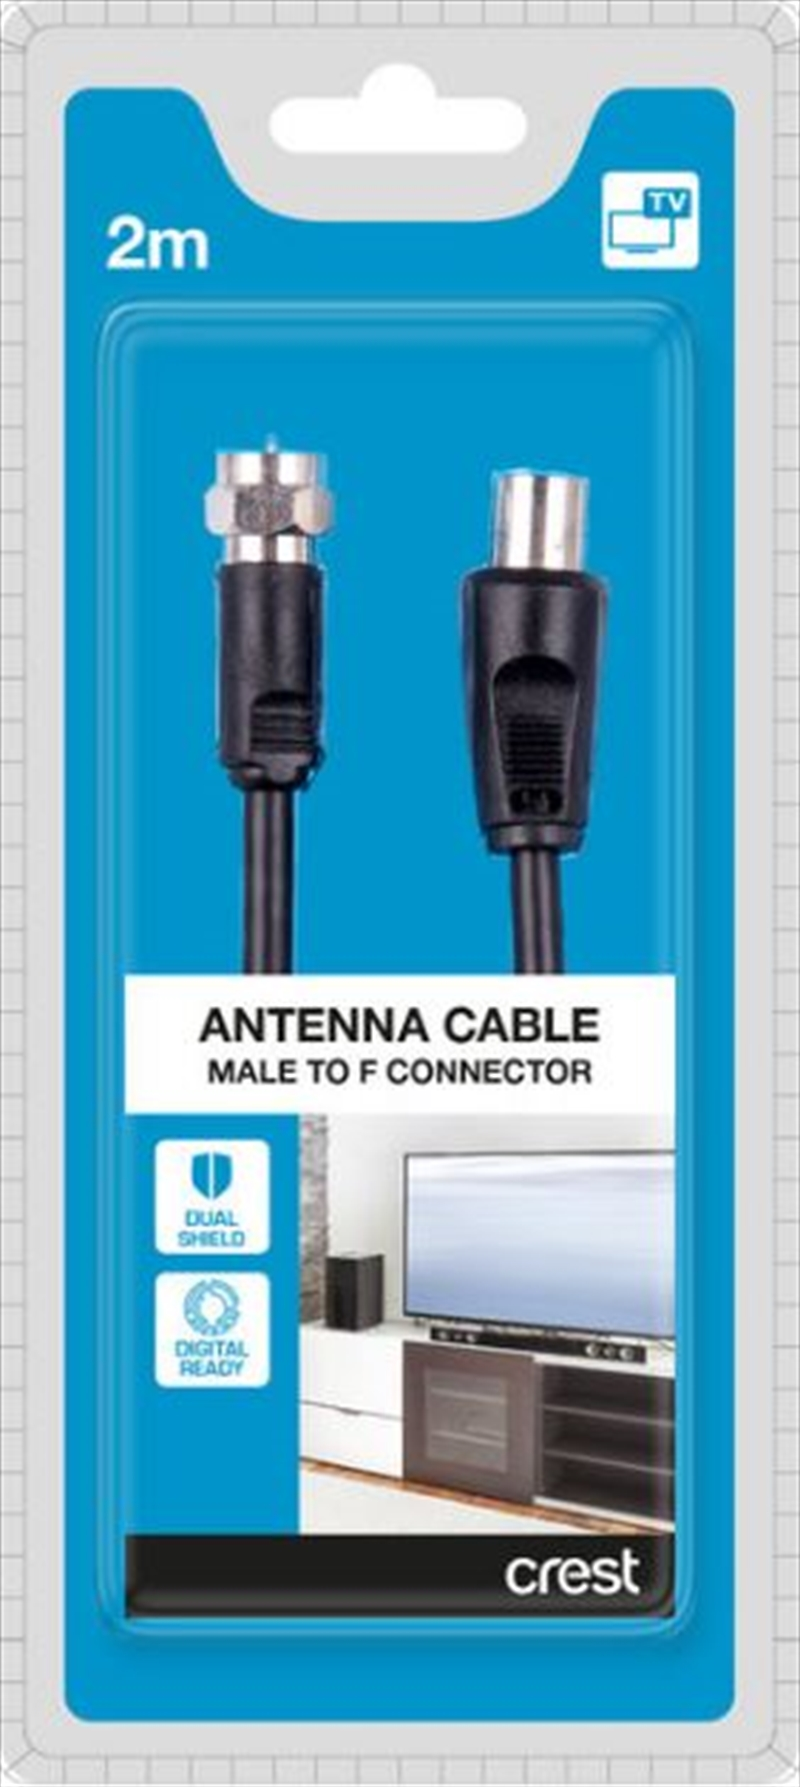 Dual Shield Male to Female TV Antenna Cable - 2M Black | Accessories